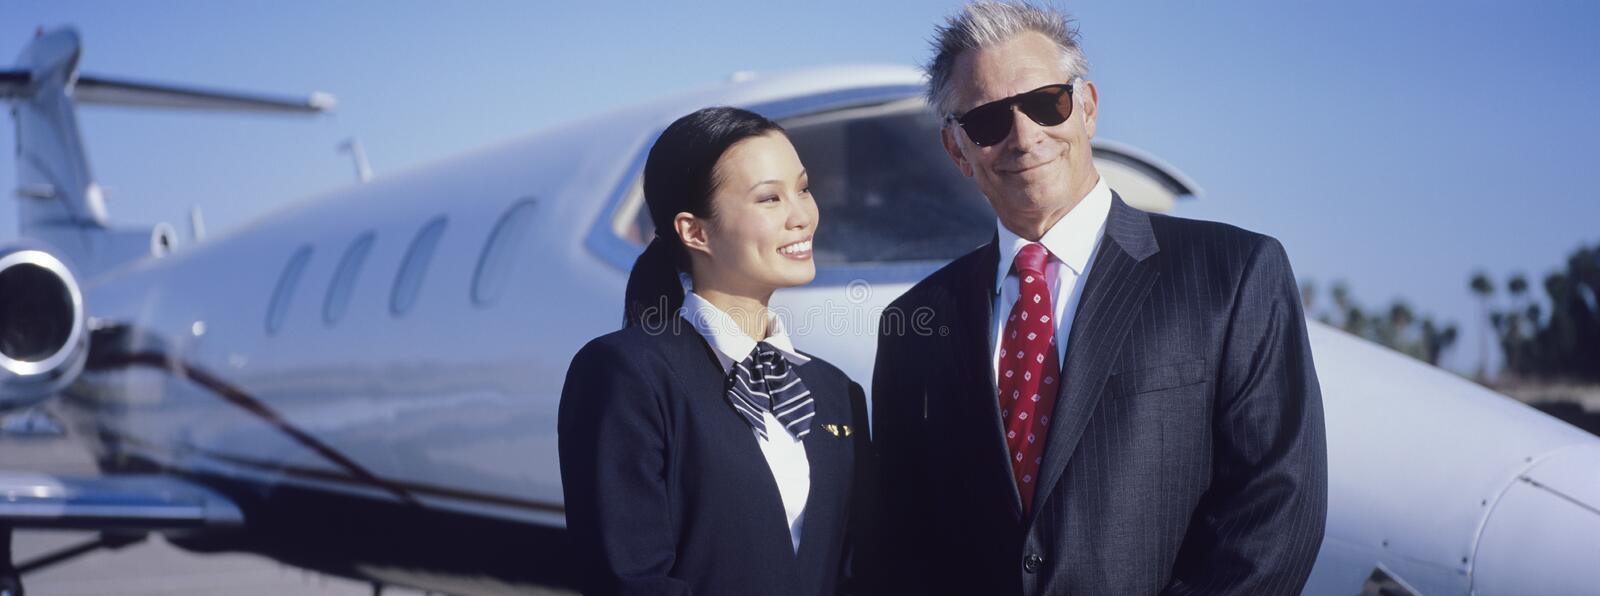 Download Businessman And Stewardess In Front Of An Aircraft Stock Photo - Image: 29653026